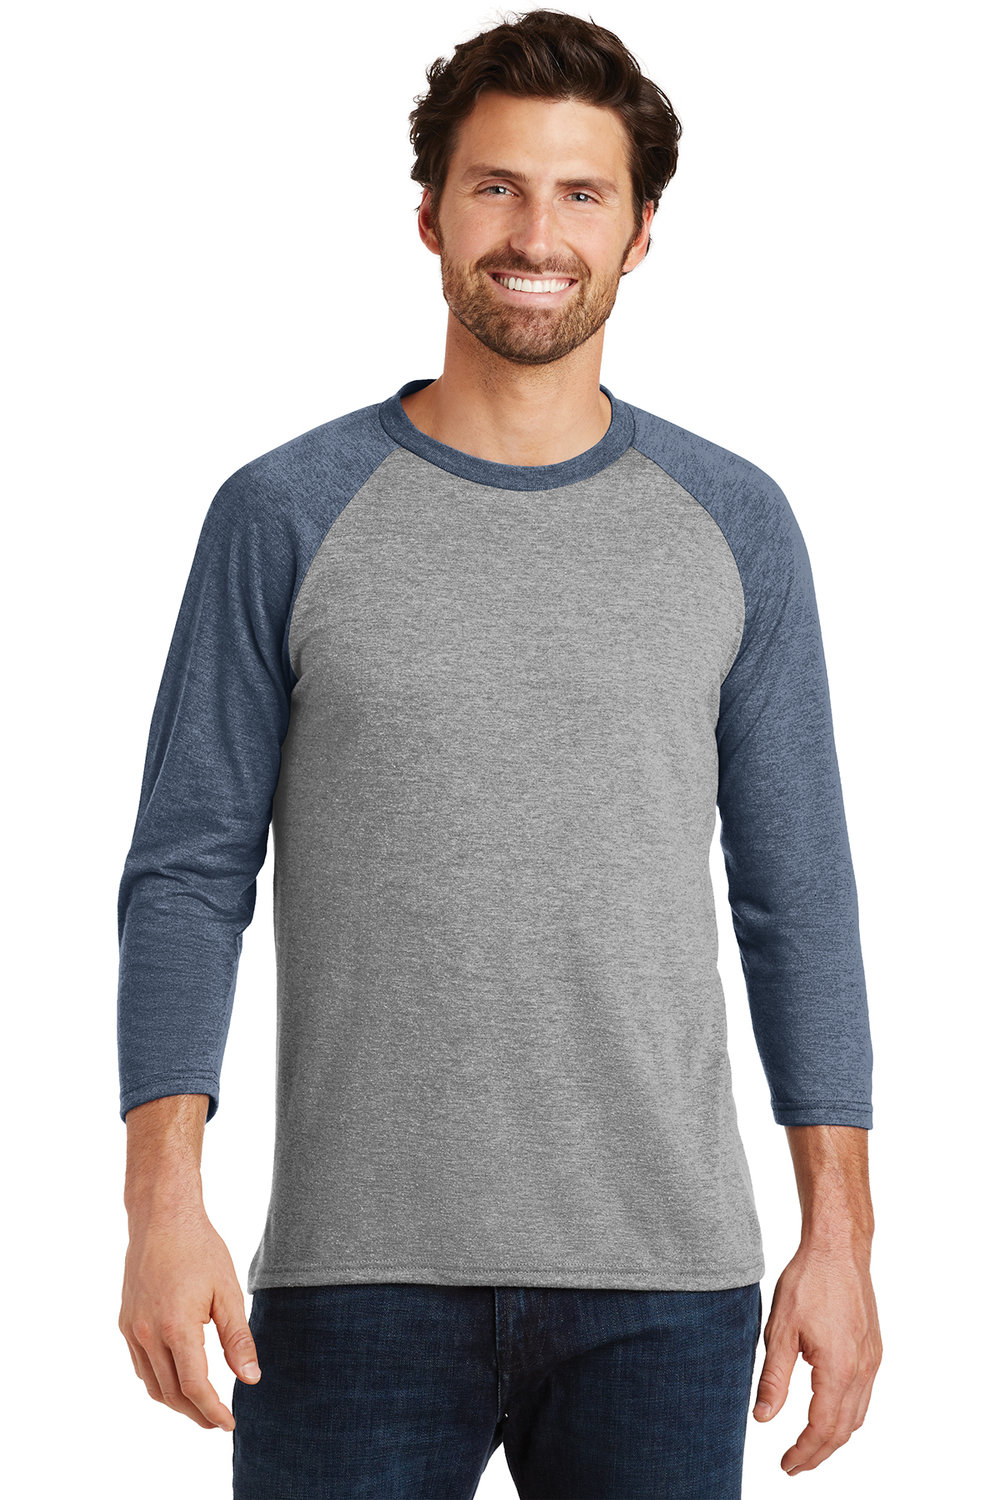 Men's 3/4 Sleeve Crew - Navy (shown), White, Black, or Royal Blue | $12